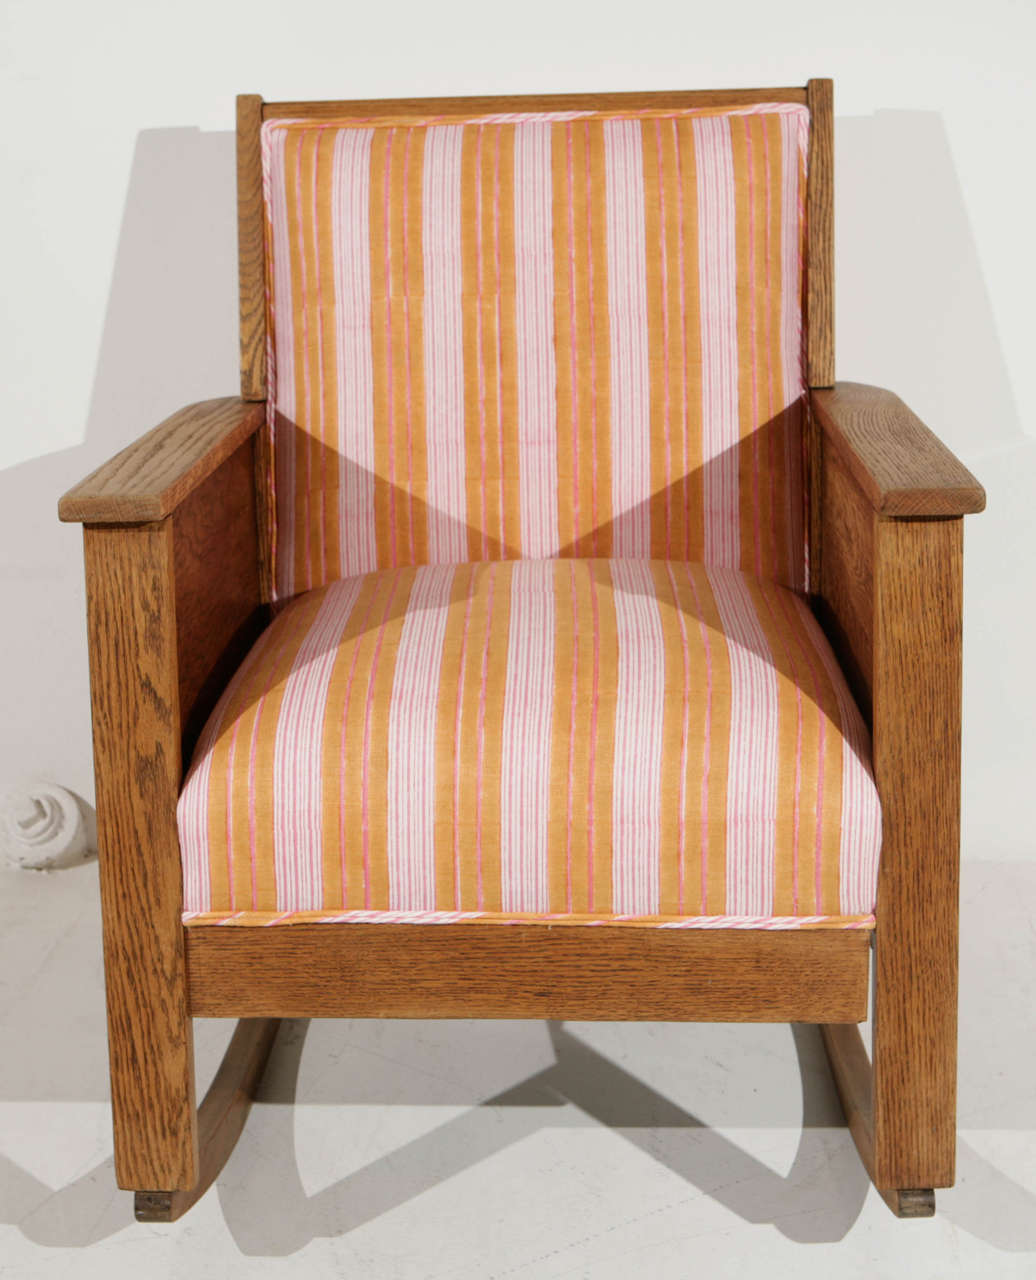 ... Century American Craftsman Mission Style Oak Rocking Chair at 1stdibs